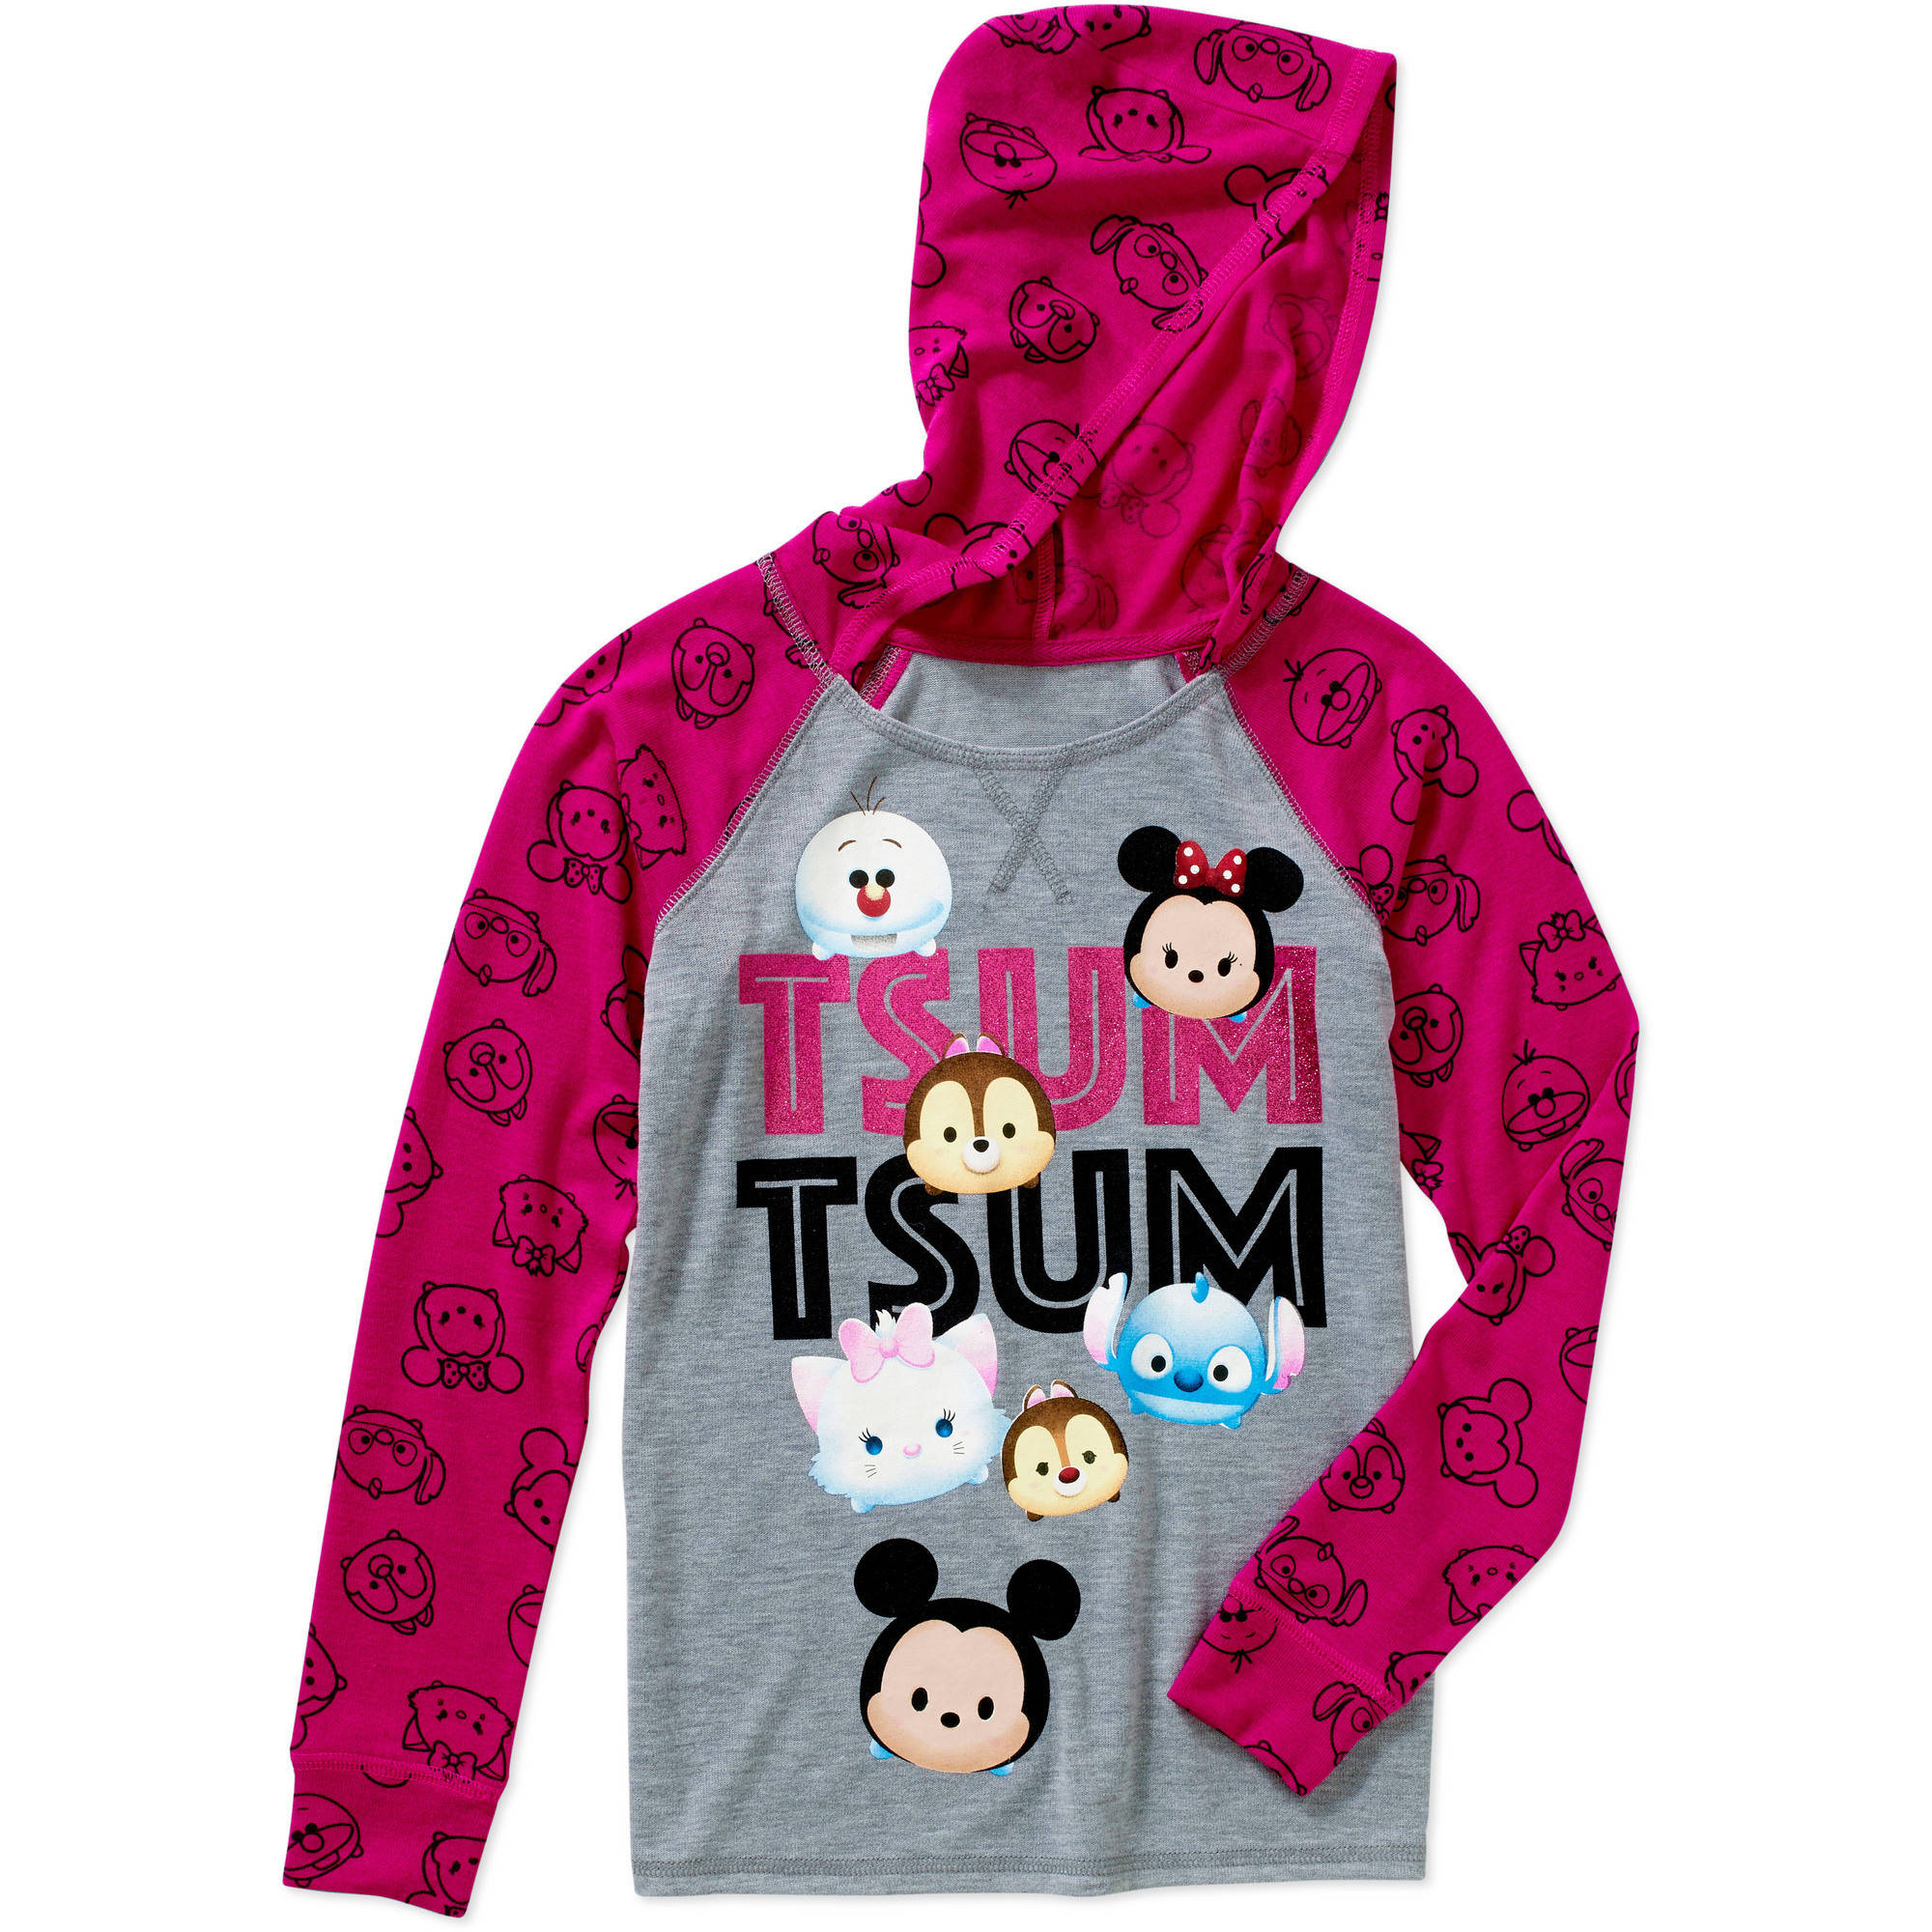 Tsum Tsum Girls' Tsum Tsum Squad Long Sleeve Hacci Top with Hood